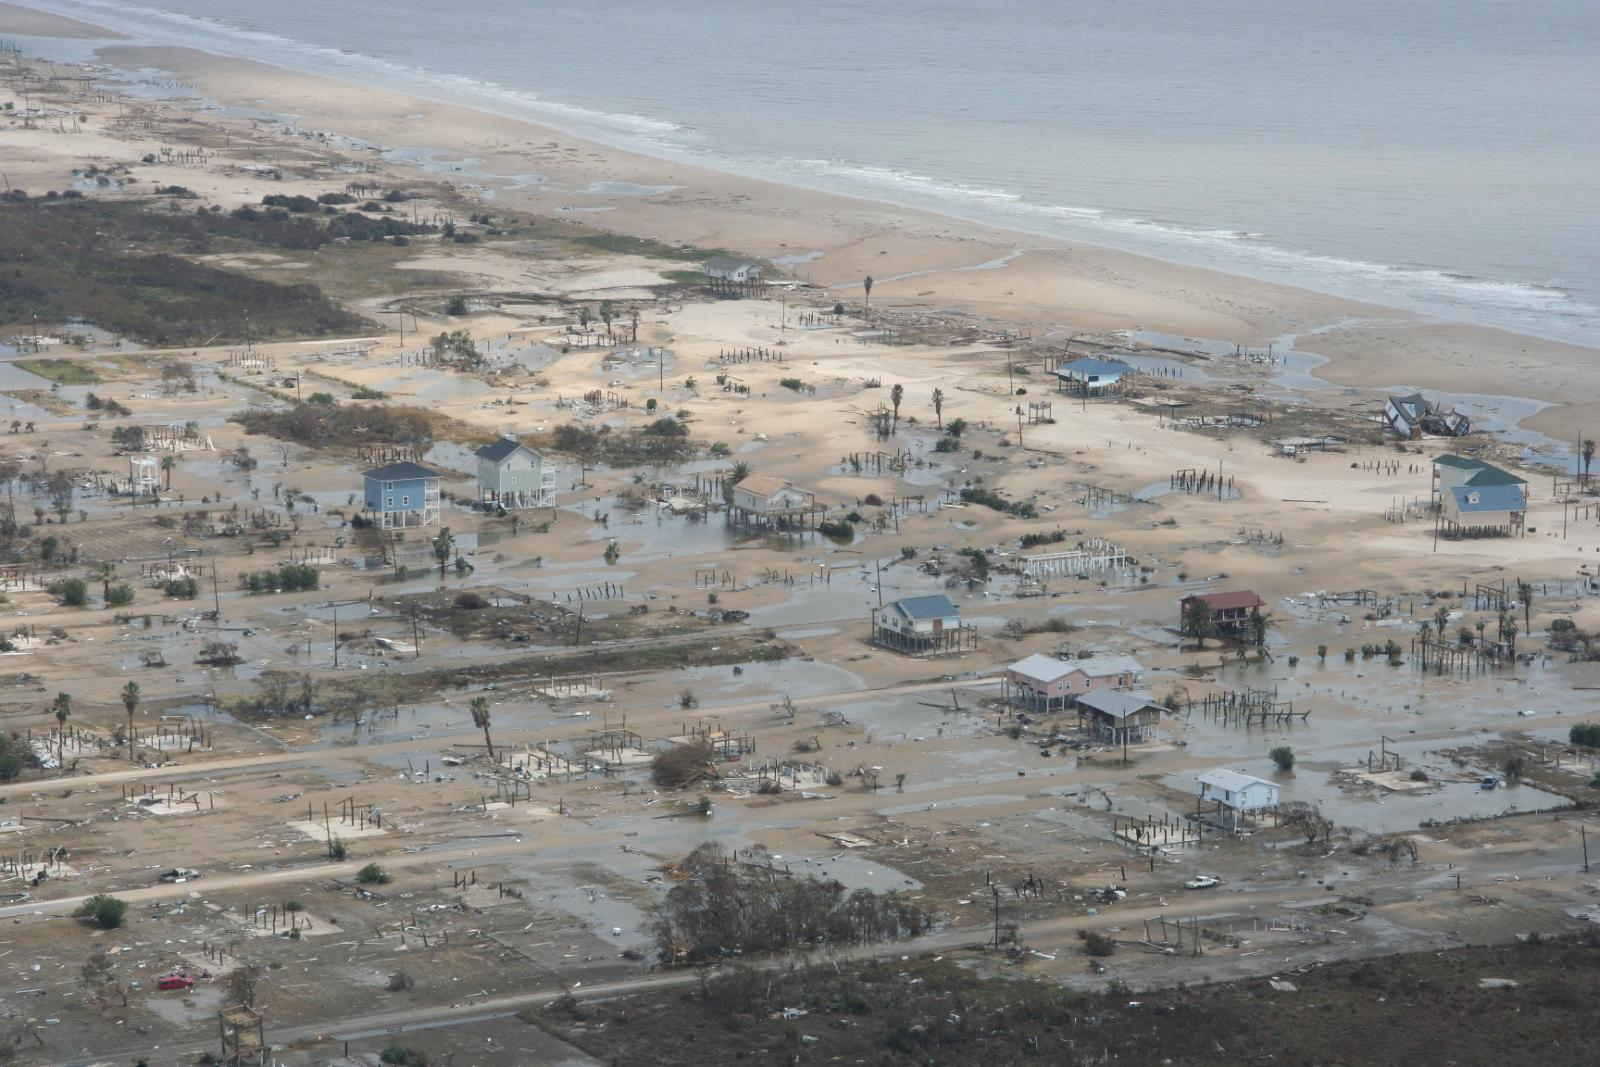 Hurricane Ike Bolivar Peninsula Damage